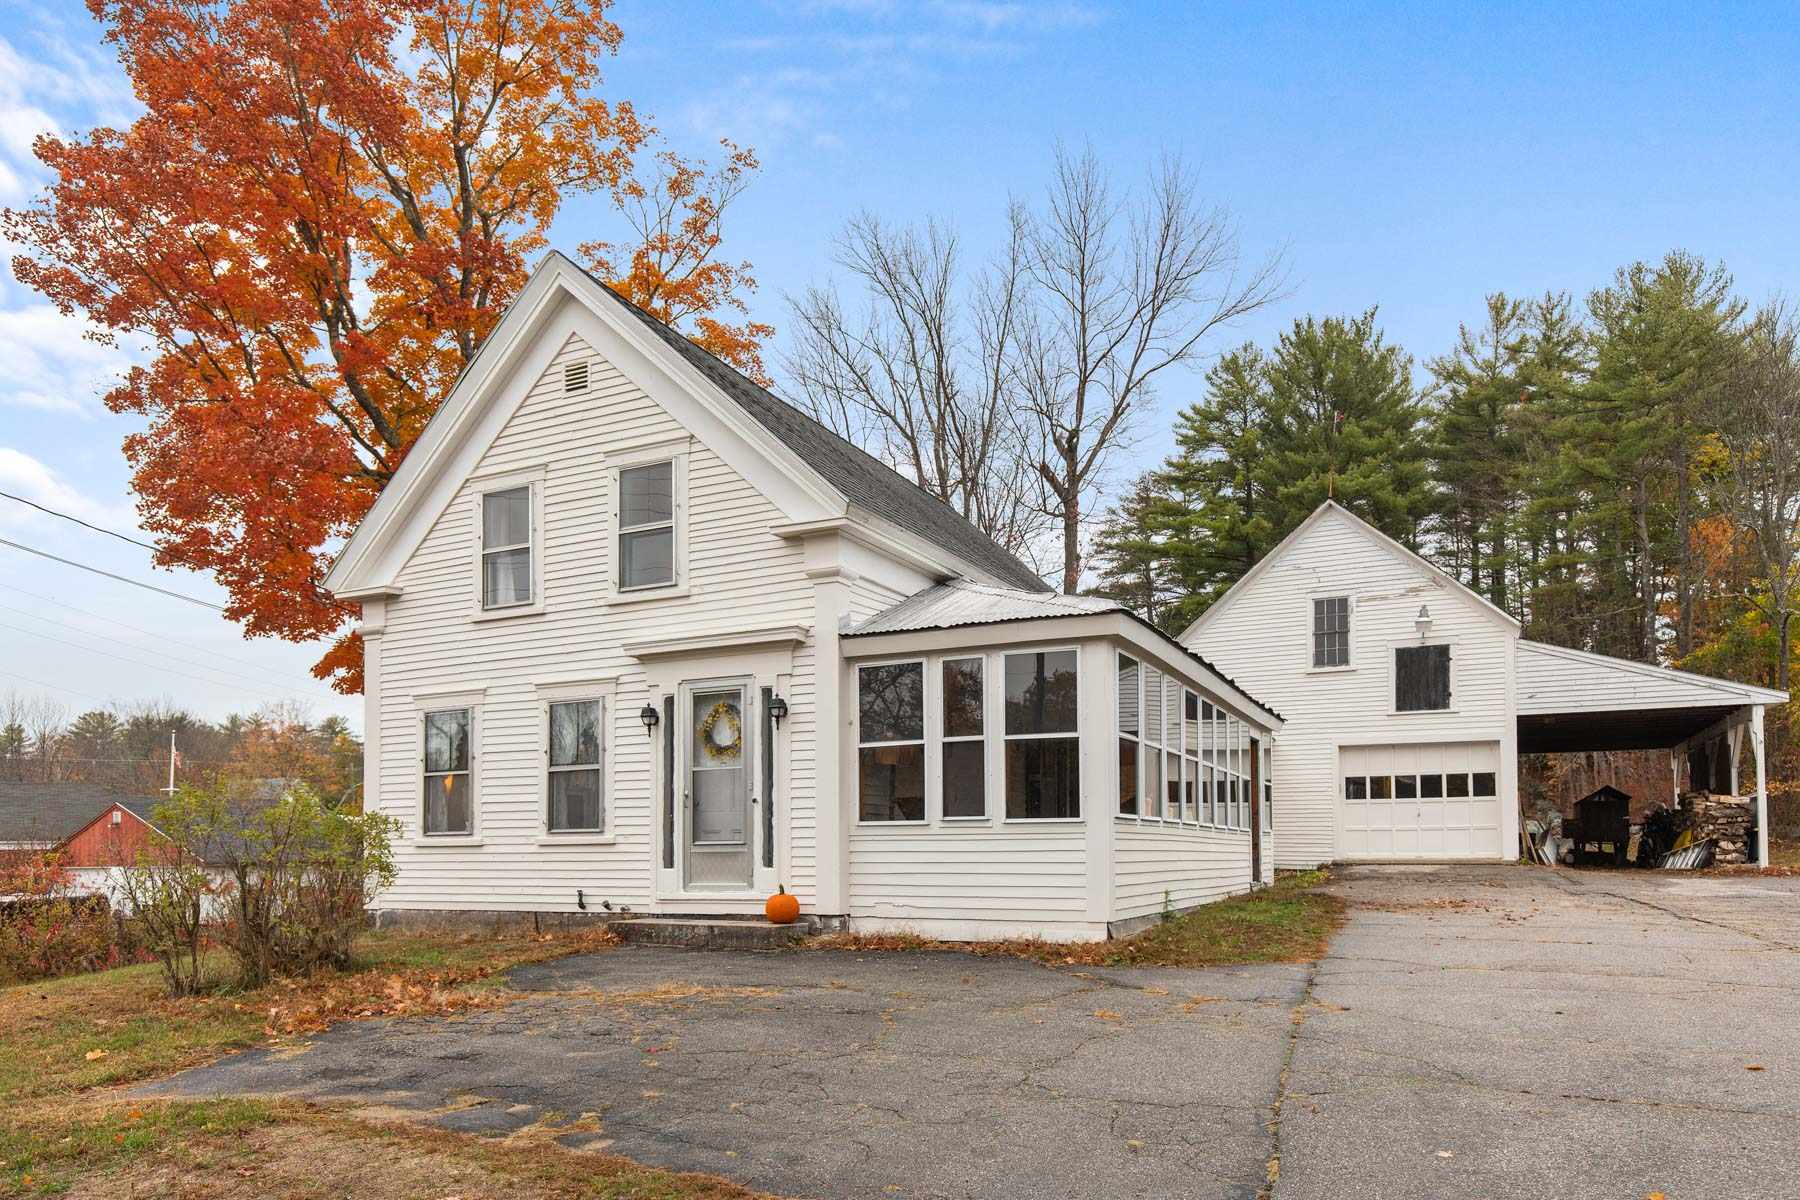 VILLAGE OF UNION IN TOWN OF WAKEFIELD NHHomes for sale